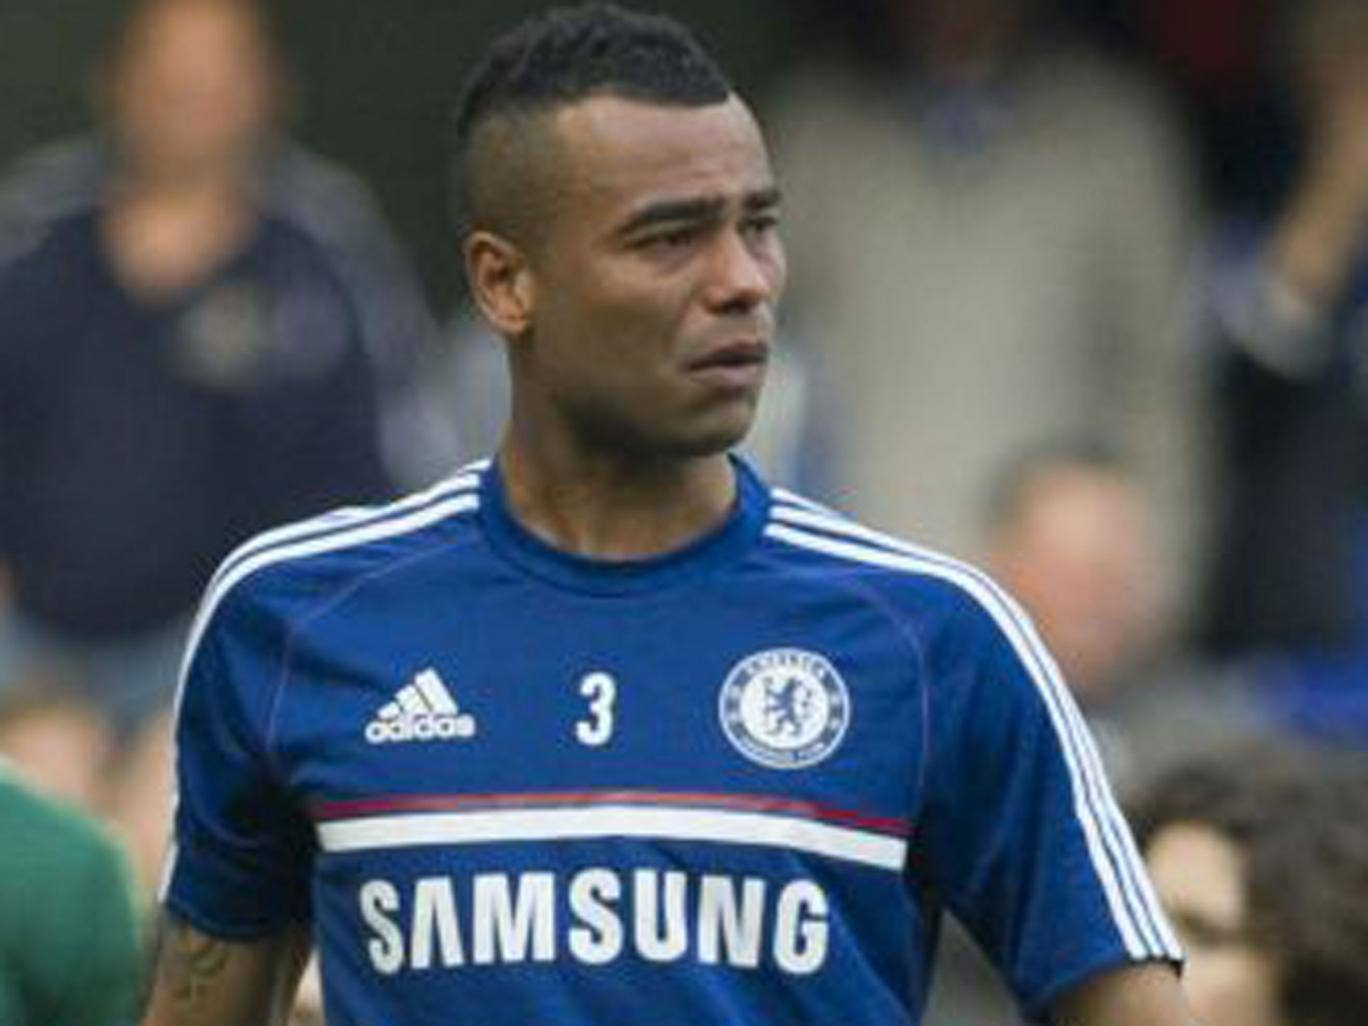 Ashley Cole looks devastated as he walks around the Stamford Bridge pitch after the match on Sunday